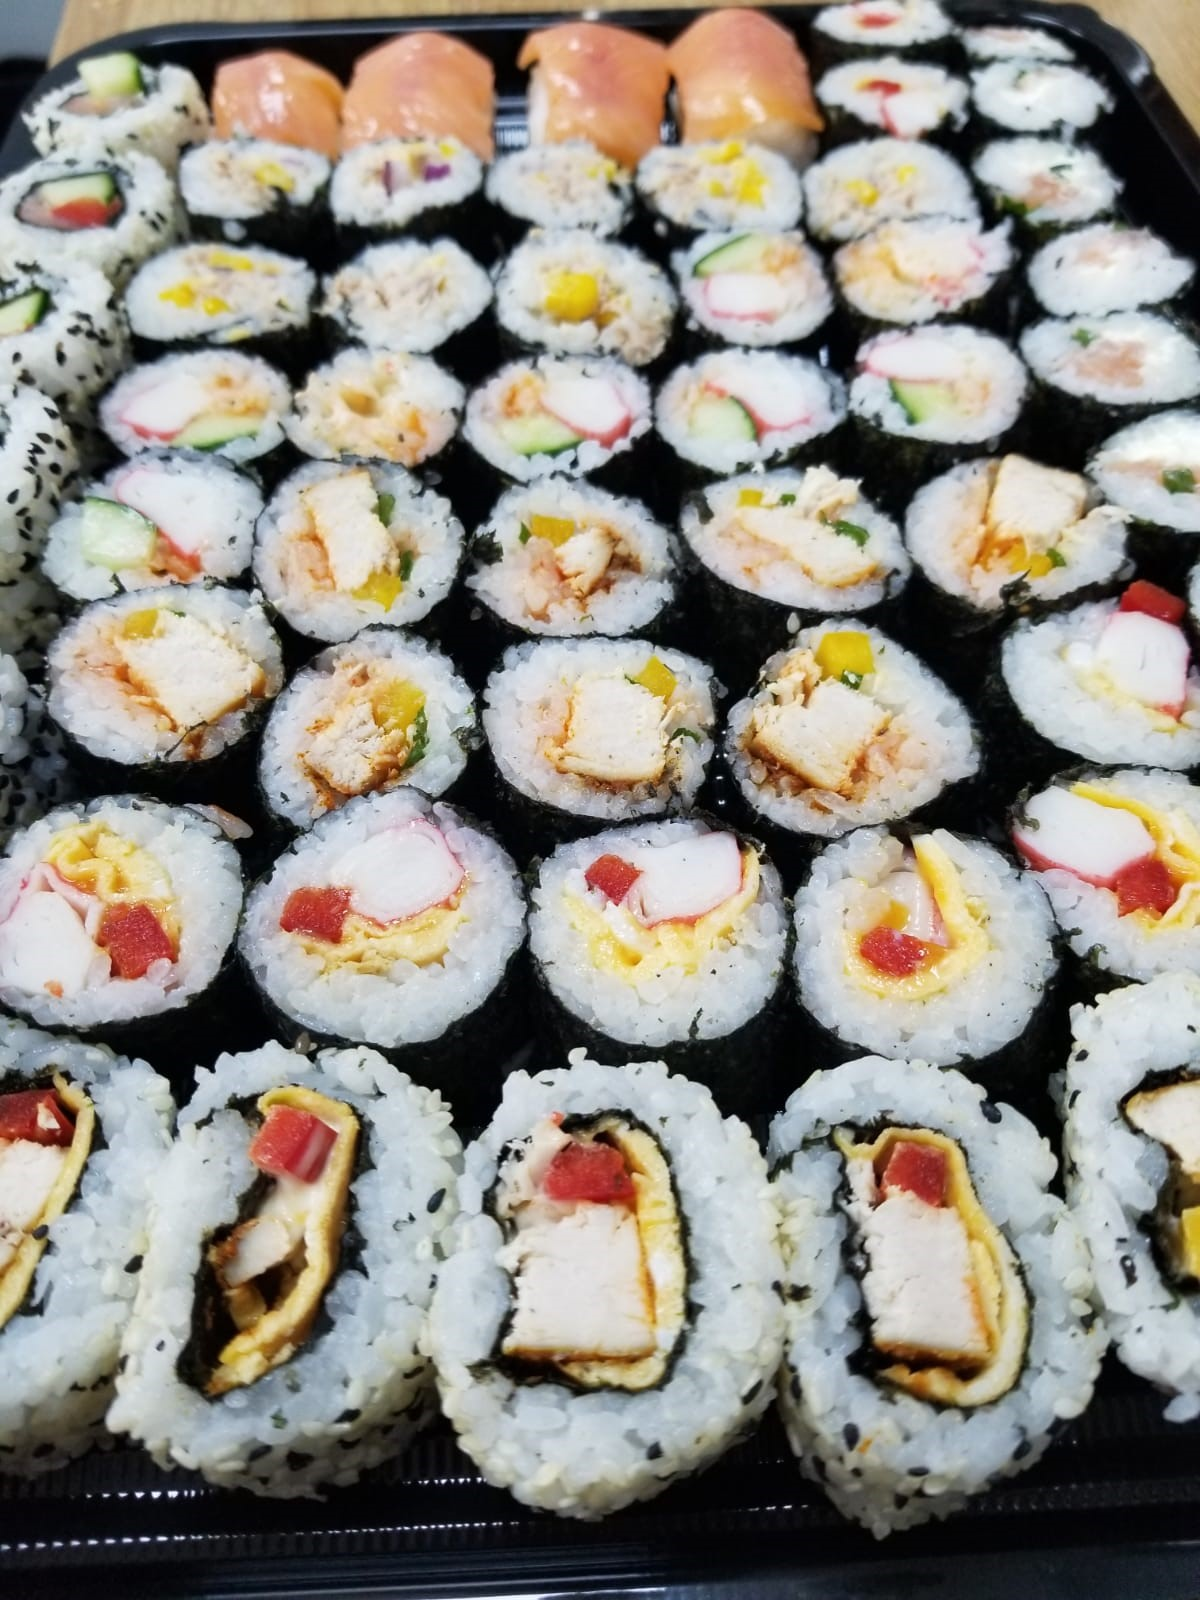 Sushi Per Portion of 6 (PRE-ORDER 3 DAYS IN ADVANCE)